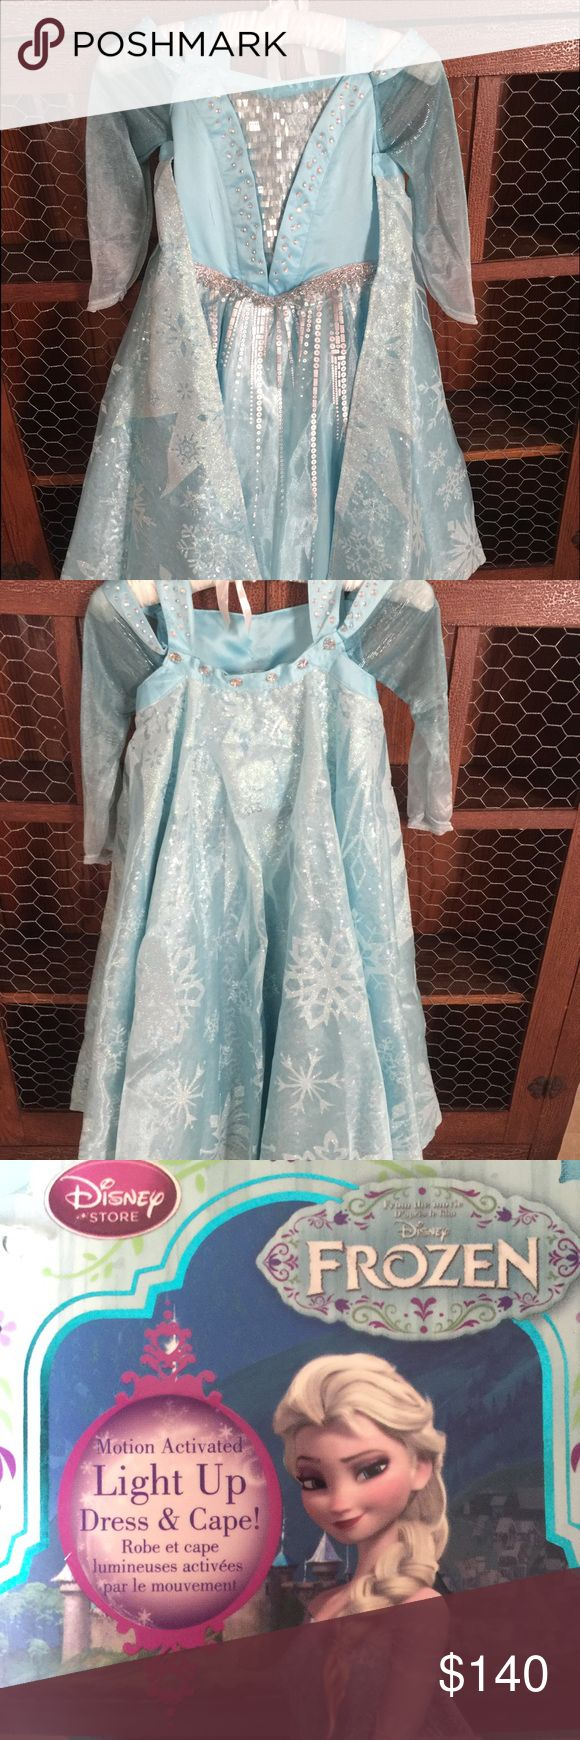 Beautiful Elsa costume. well made and never worn. Very well made, never worn Elsa dress/costume. Pictures do this dress no justice. disney store Costumes Halloween